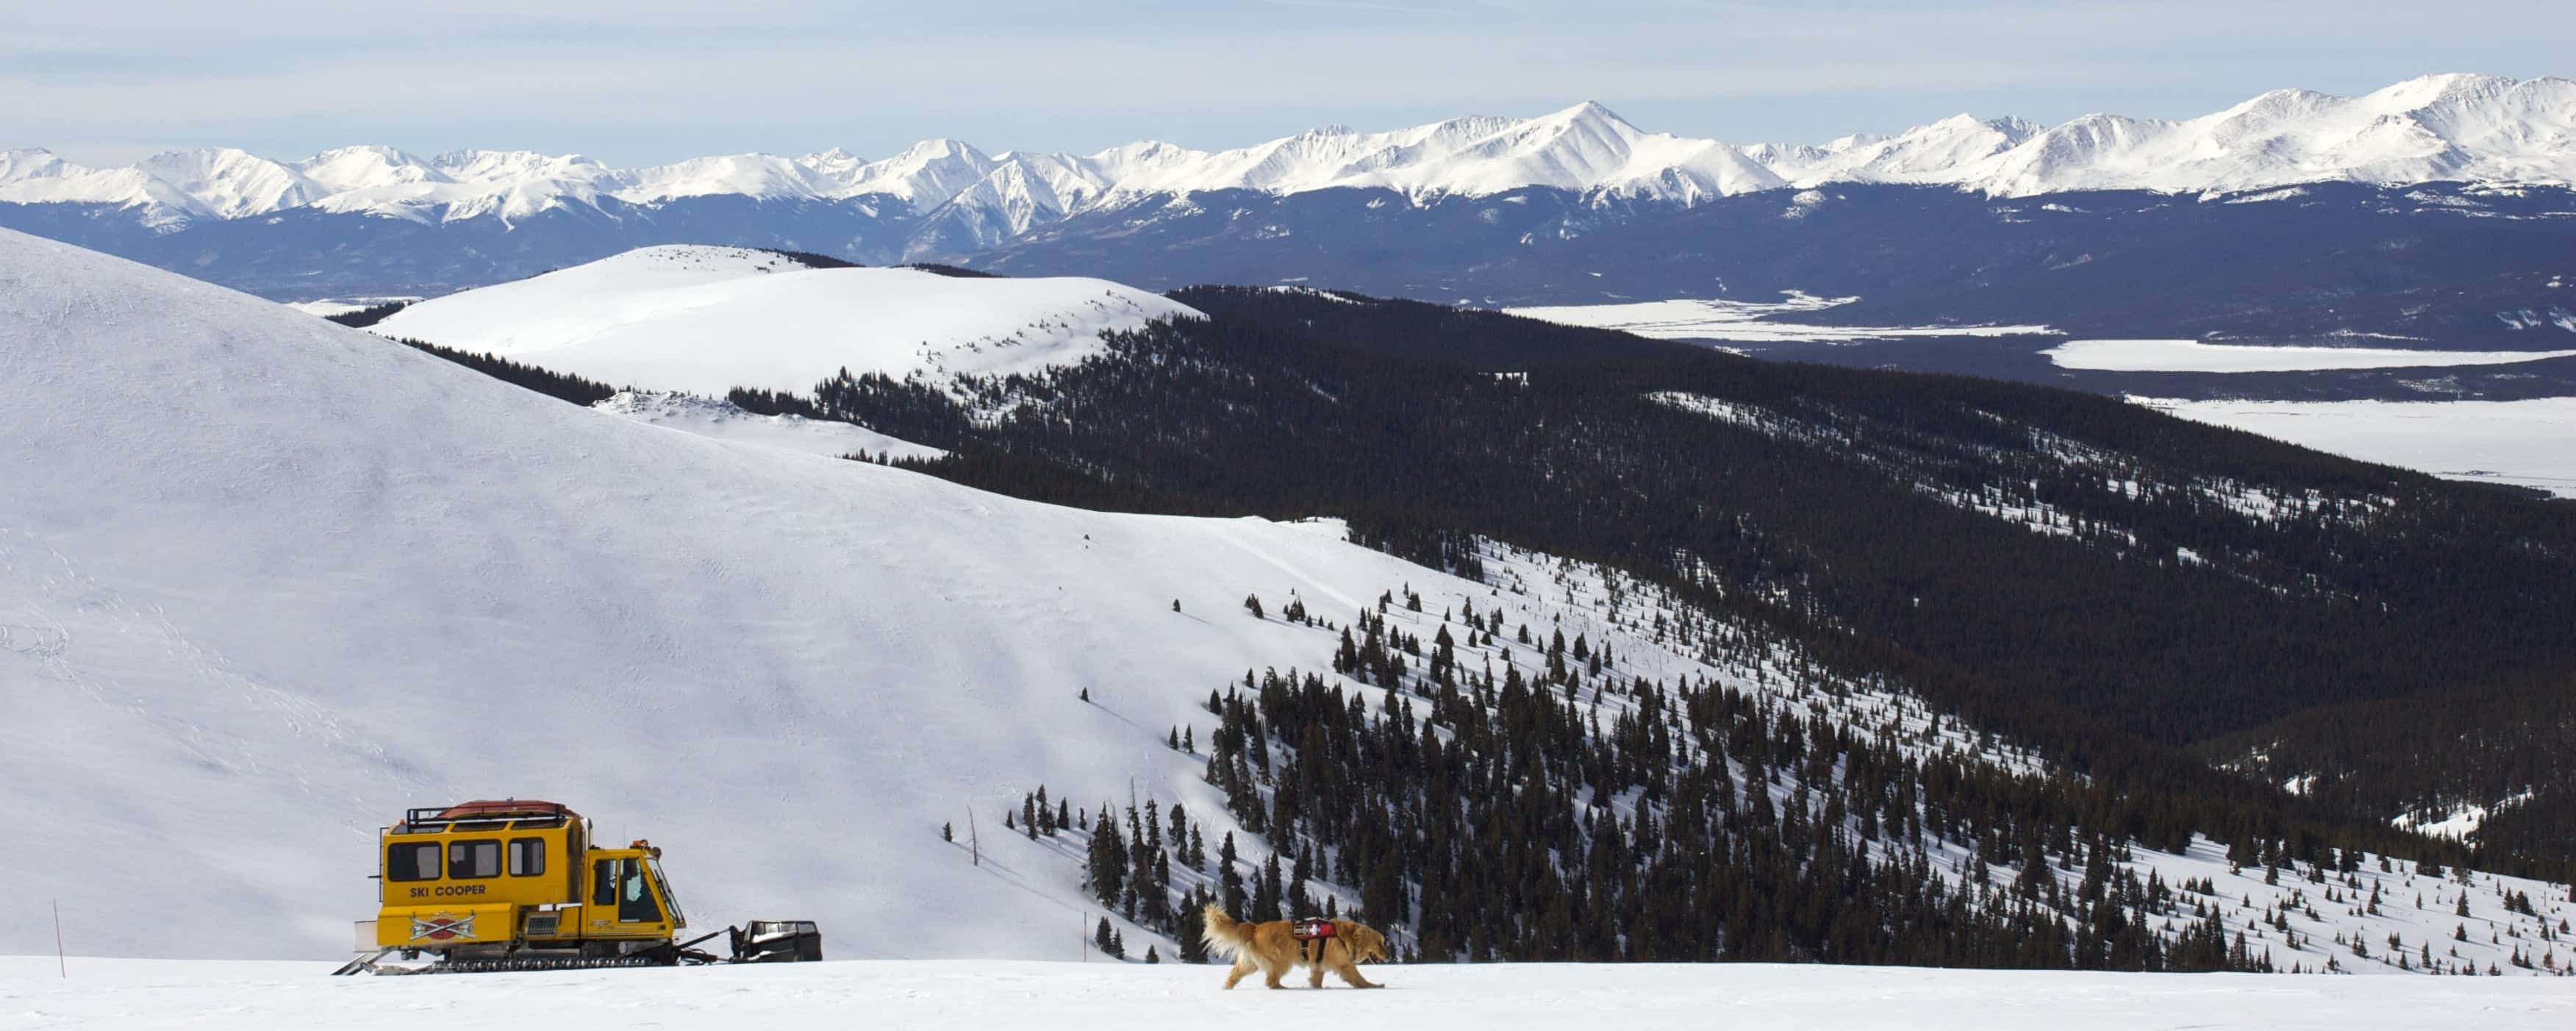 Looking for an affordable ski trip? Check out the Colorado Gems Resorts: Cooper Ski Area